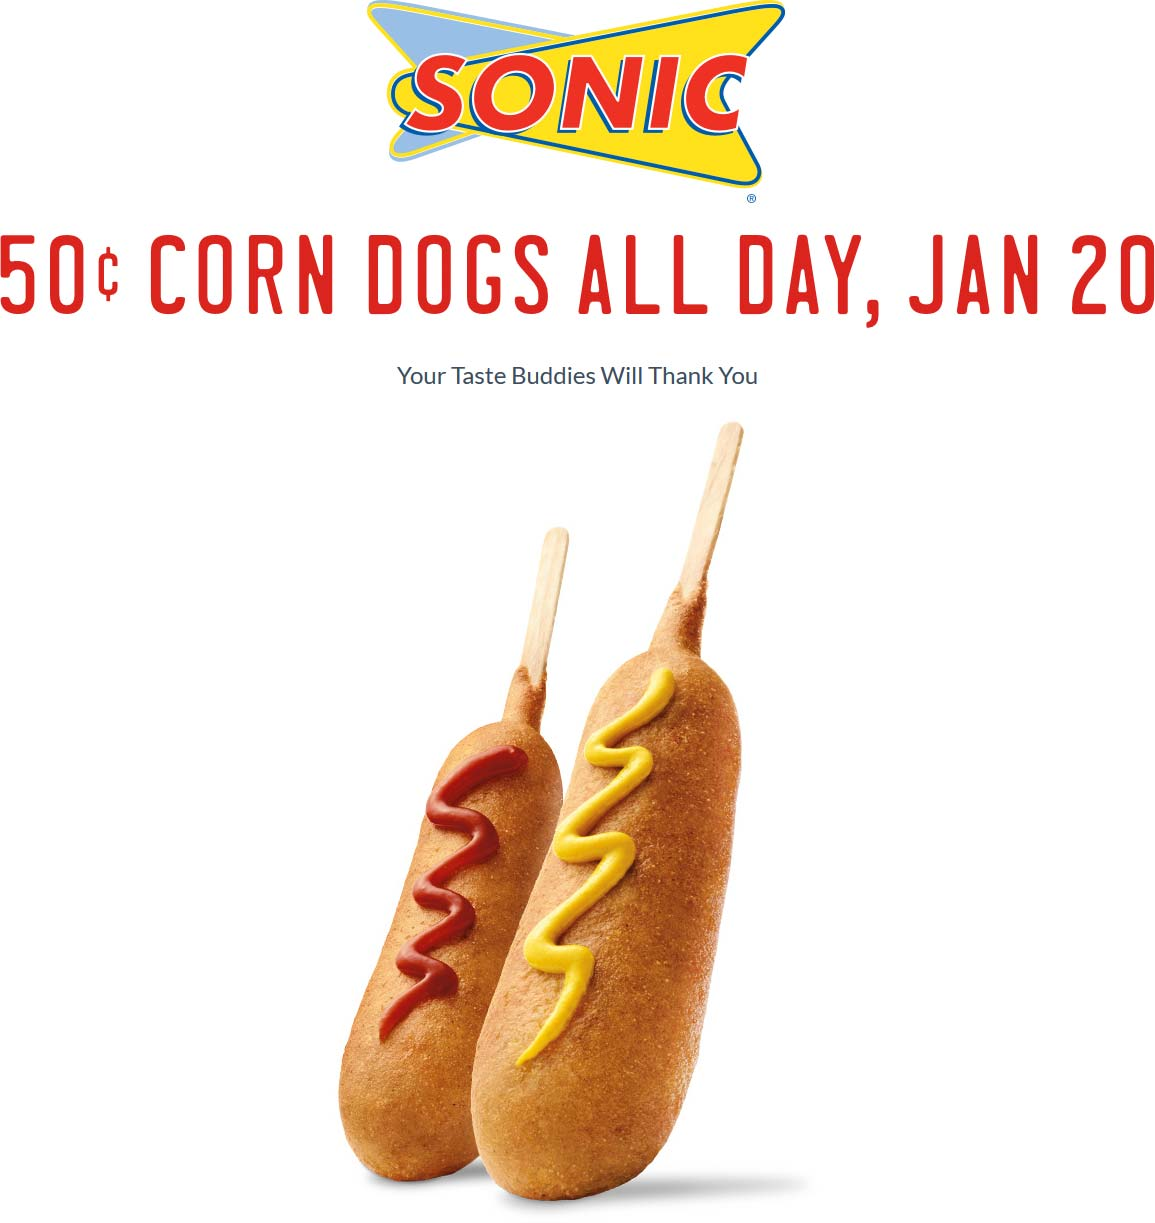 Sonic Drive-In Coupon March 2017 .50 cent corn dogs Wednesday at Sonic Drive-In